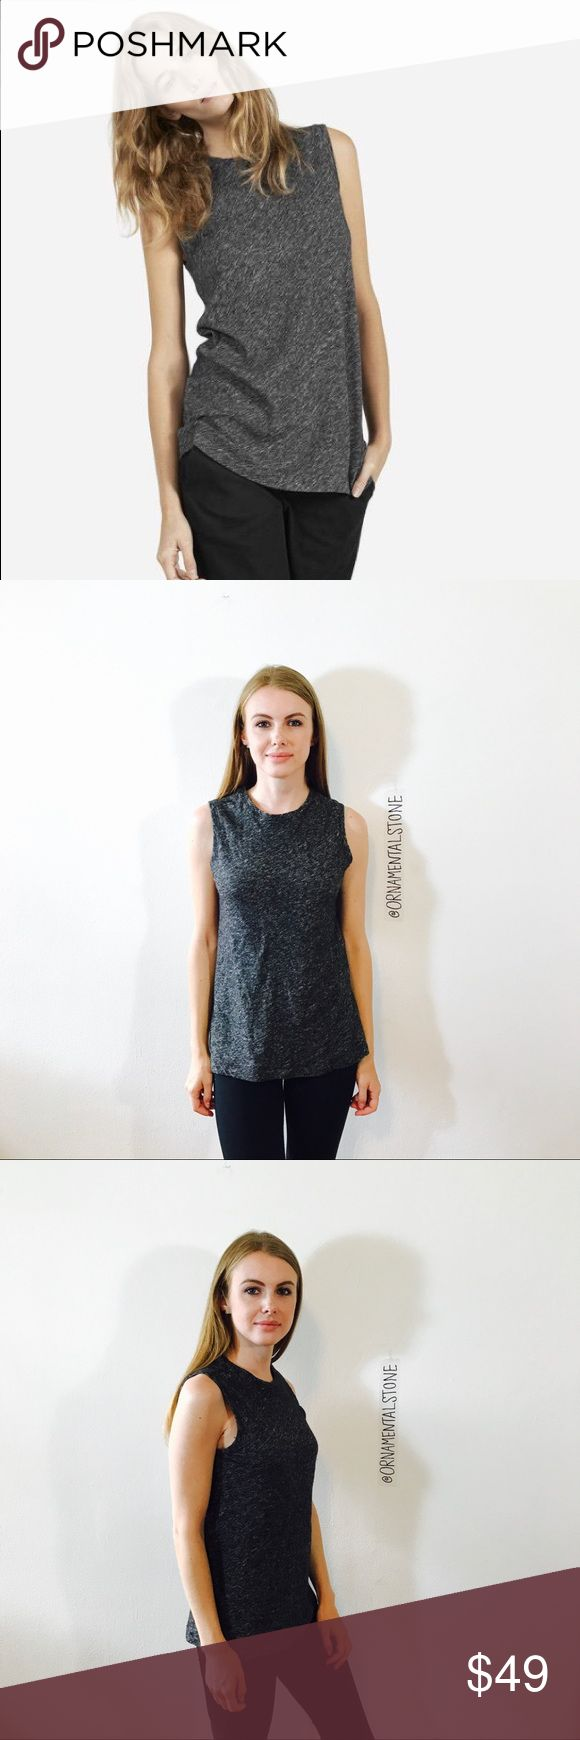 EVERLAND SWEATER HEATHERED MUSCLE TANK TOP #A92 EUC, like new, no issues. Charcoal heathered gray. Everlane Tops Tank Tops